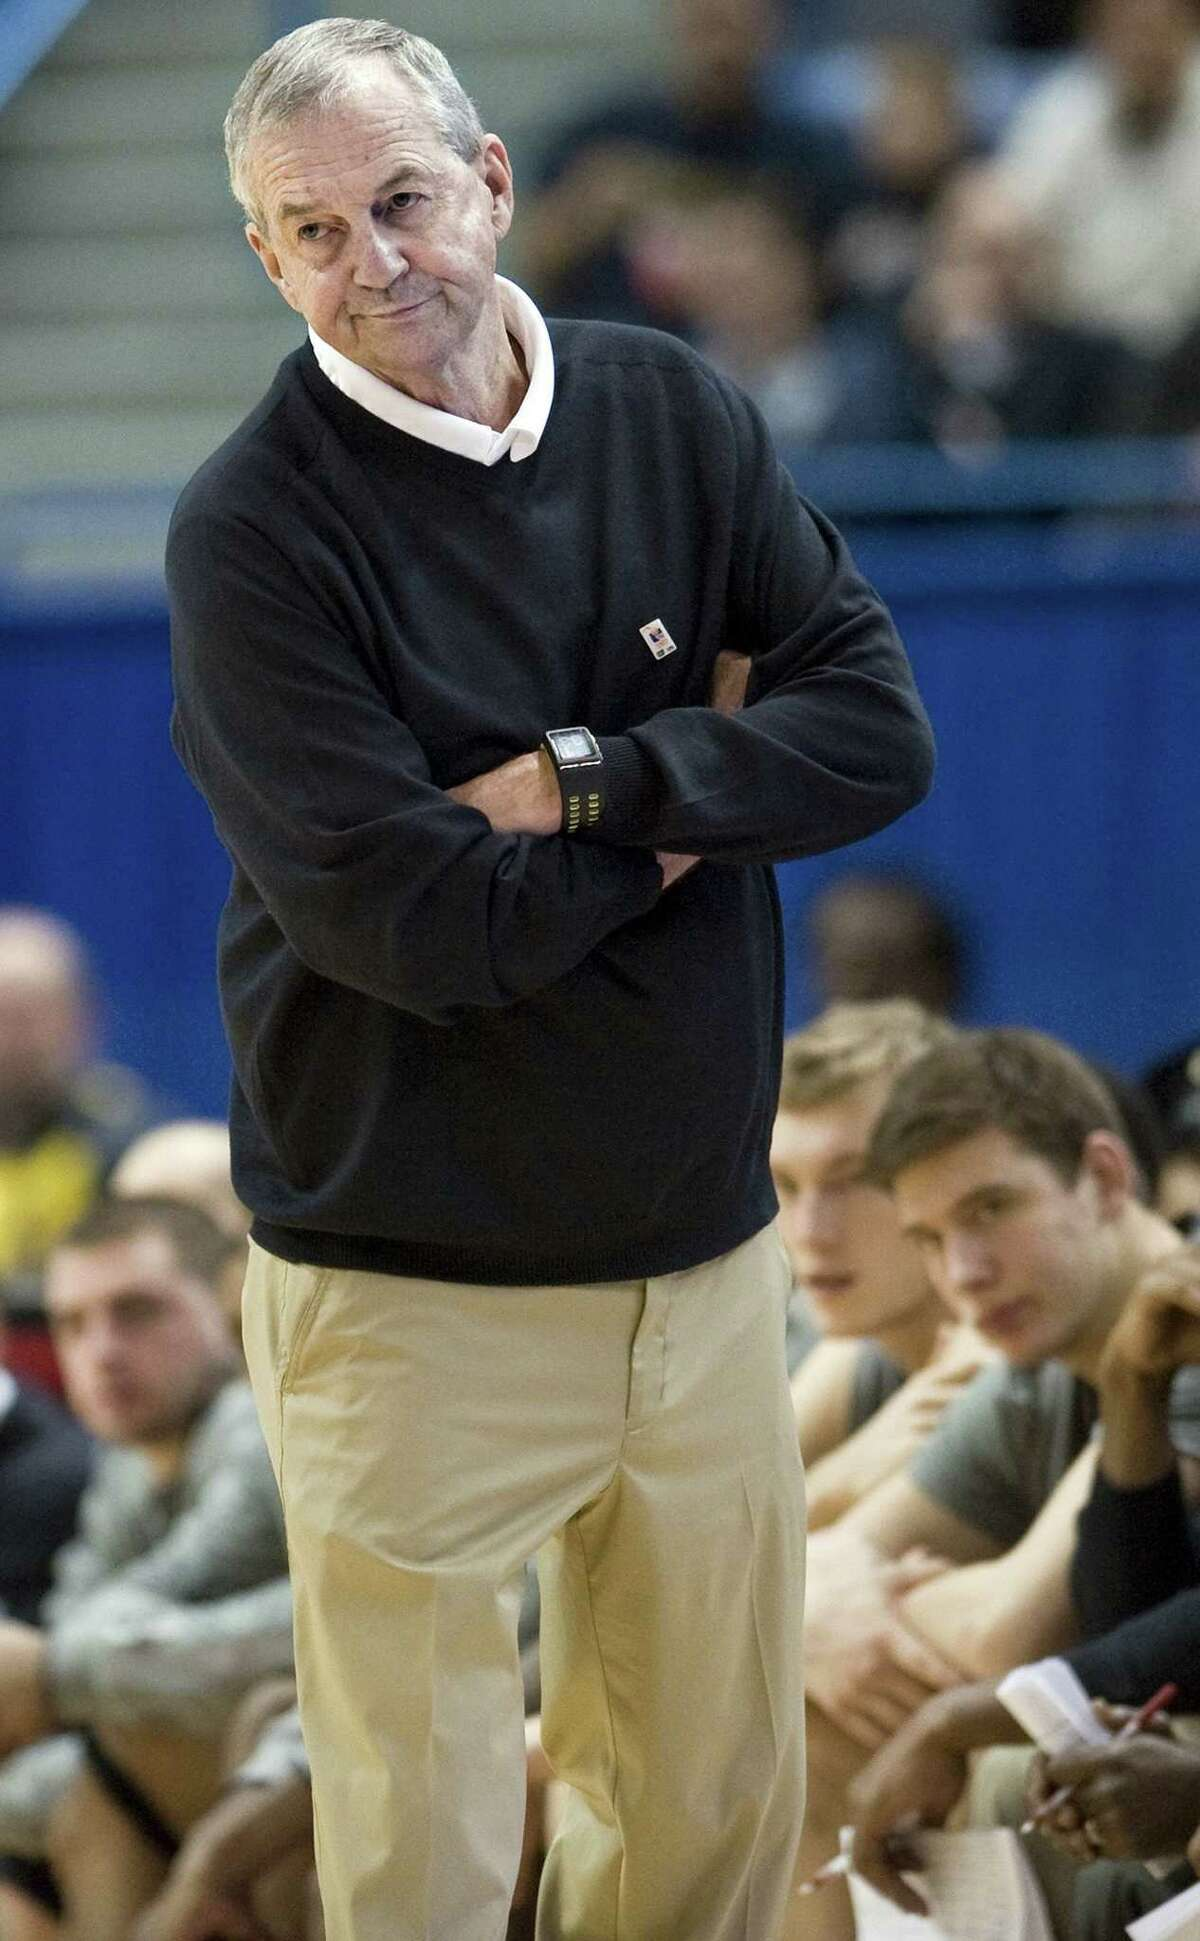 FILE - In this Jan. 29, 2012,, file photo, Connecticut head coach Jim Calhoun watches play in the second half of an NCAA college basketball game against Notre Dame in Hartford, Conn. Calhoun is taking an indefinite medical leave of absence, the school announced Friday, Feb. 3, 2012. The Hall of Fame coach, who turns 70 in May, has been suffering for several months from spinal stenosis, a lower back condition that causes him severe pain and hampers mobility, the school said Friday in a news release.